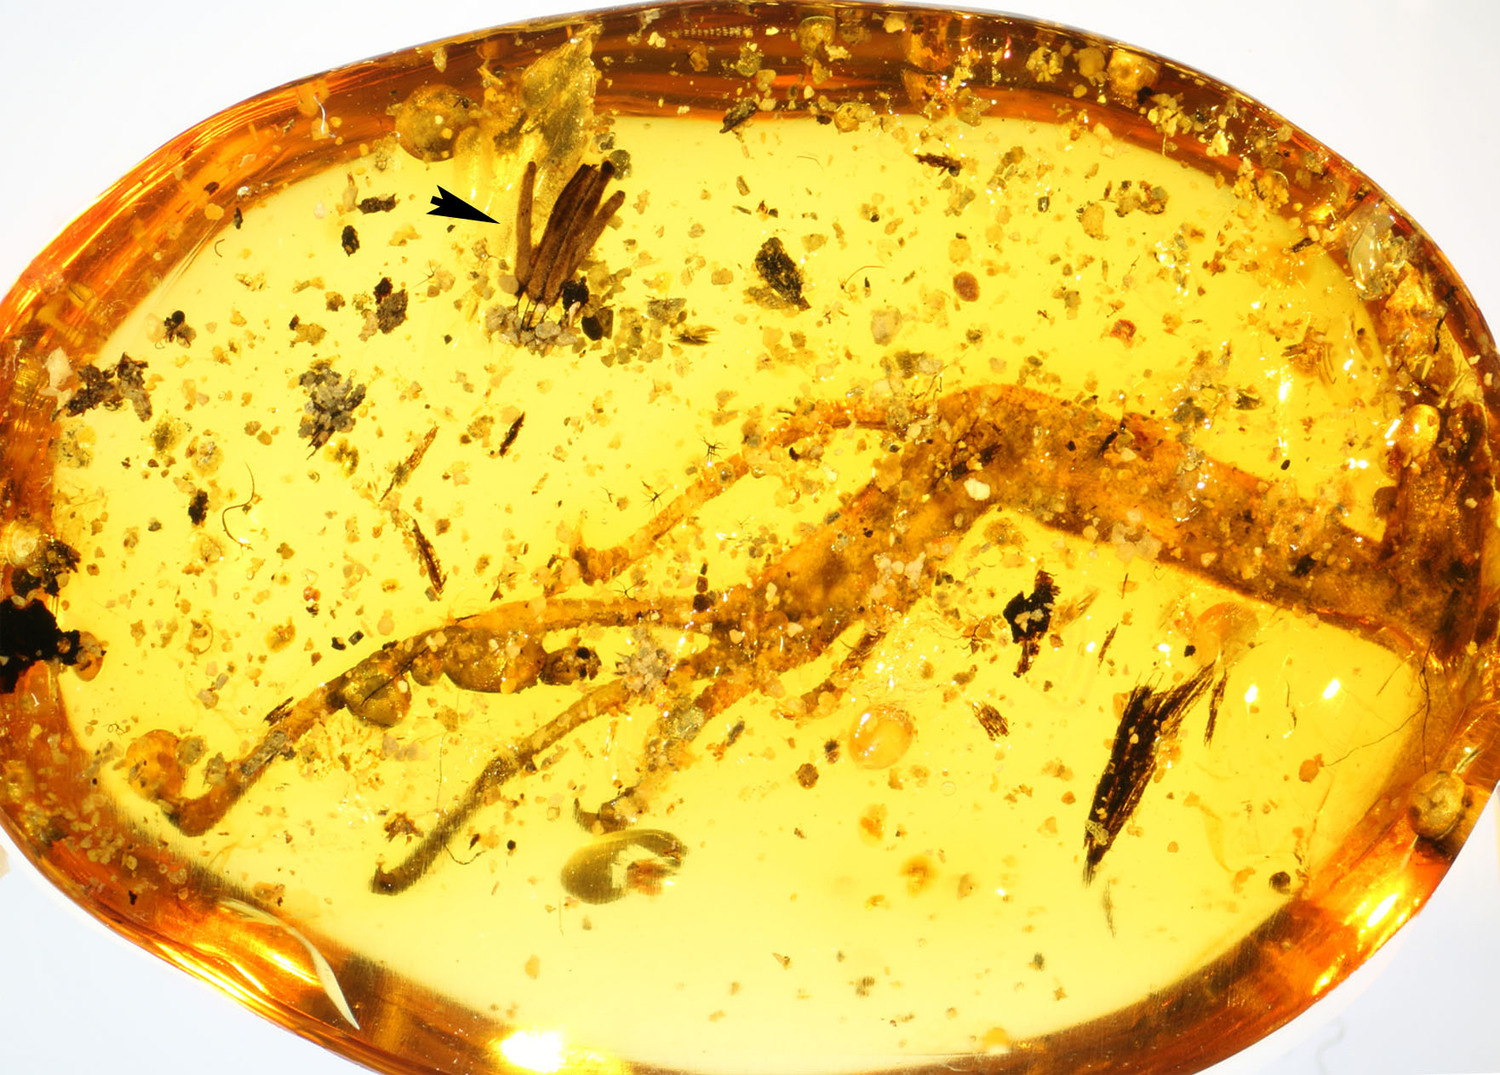 100 million-year-old amber piece with lizard leg and mycomycete (arrow).